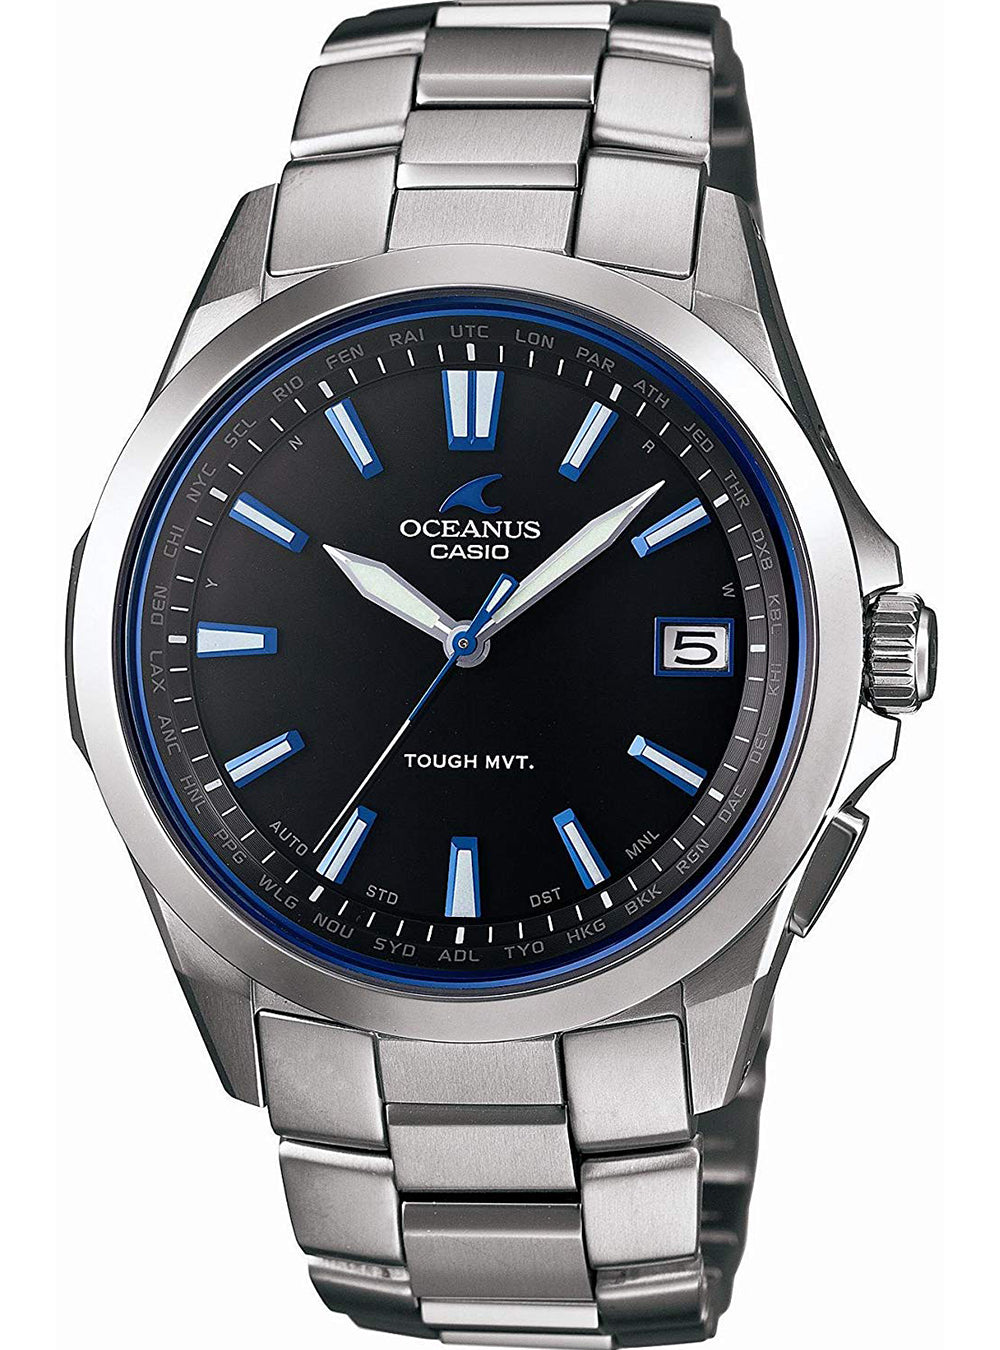 CASIO OCEANUS OCW-S100-1AJF SOLAR RADIO WAVE MADE IN JAPAN JDM